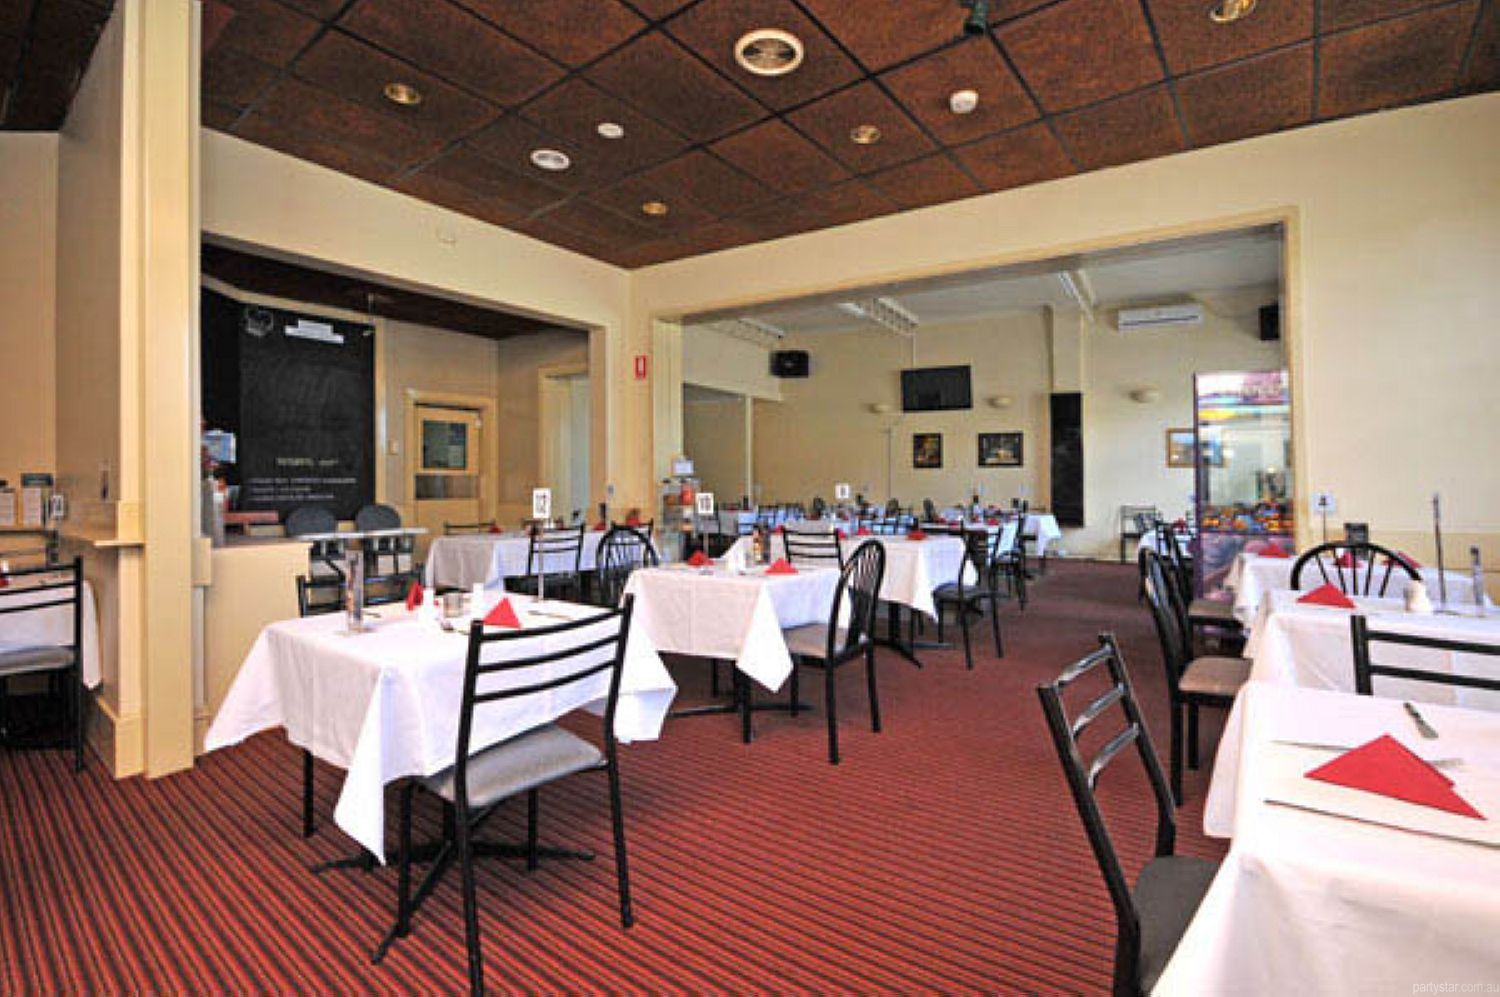 Brian Boru Hotel, Bendigo, VIC. Function Room hire photo #4